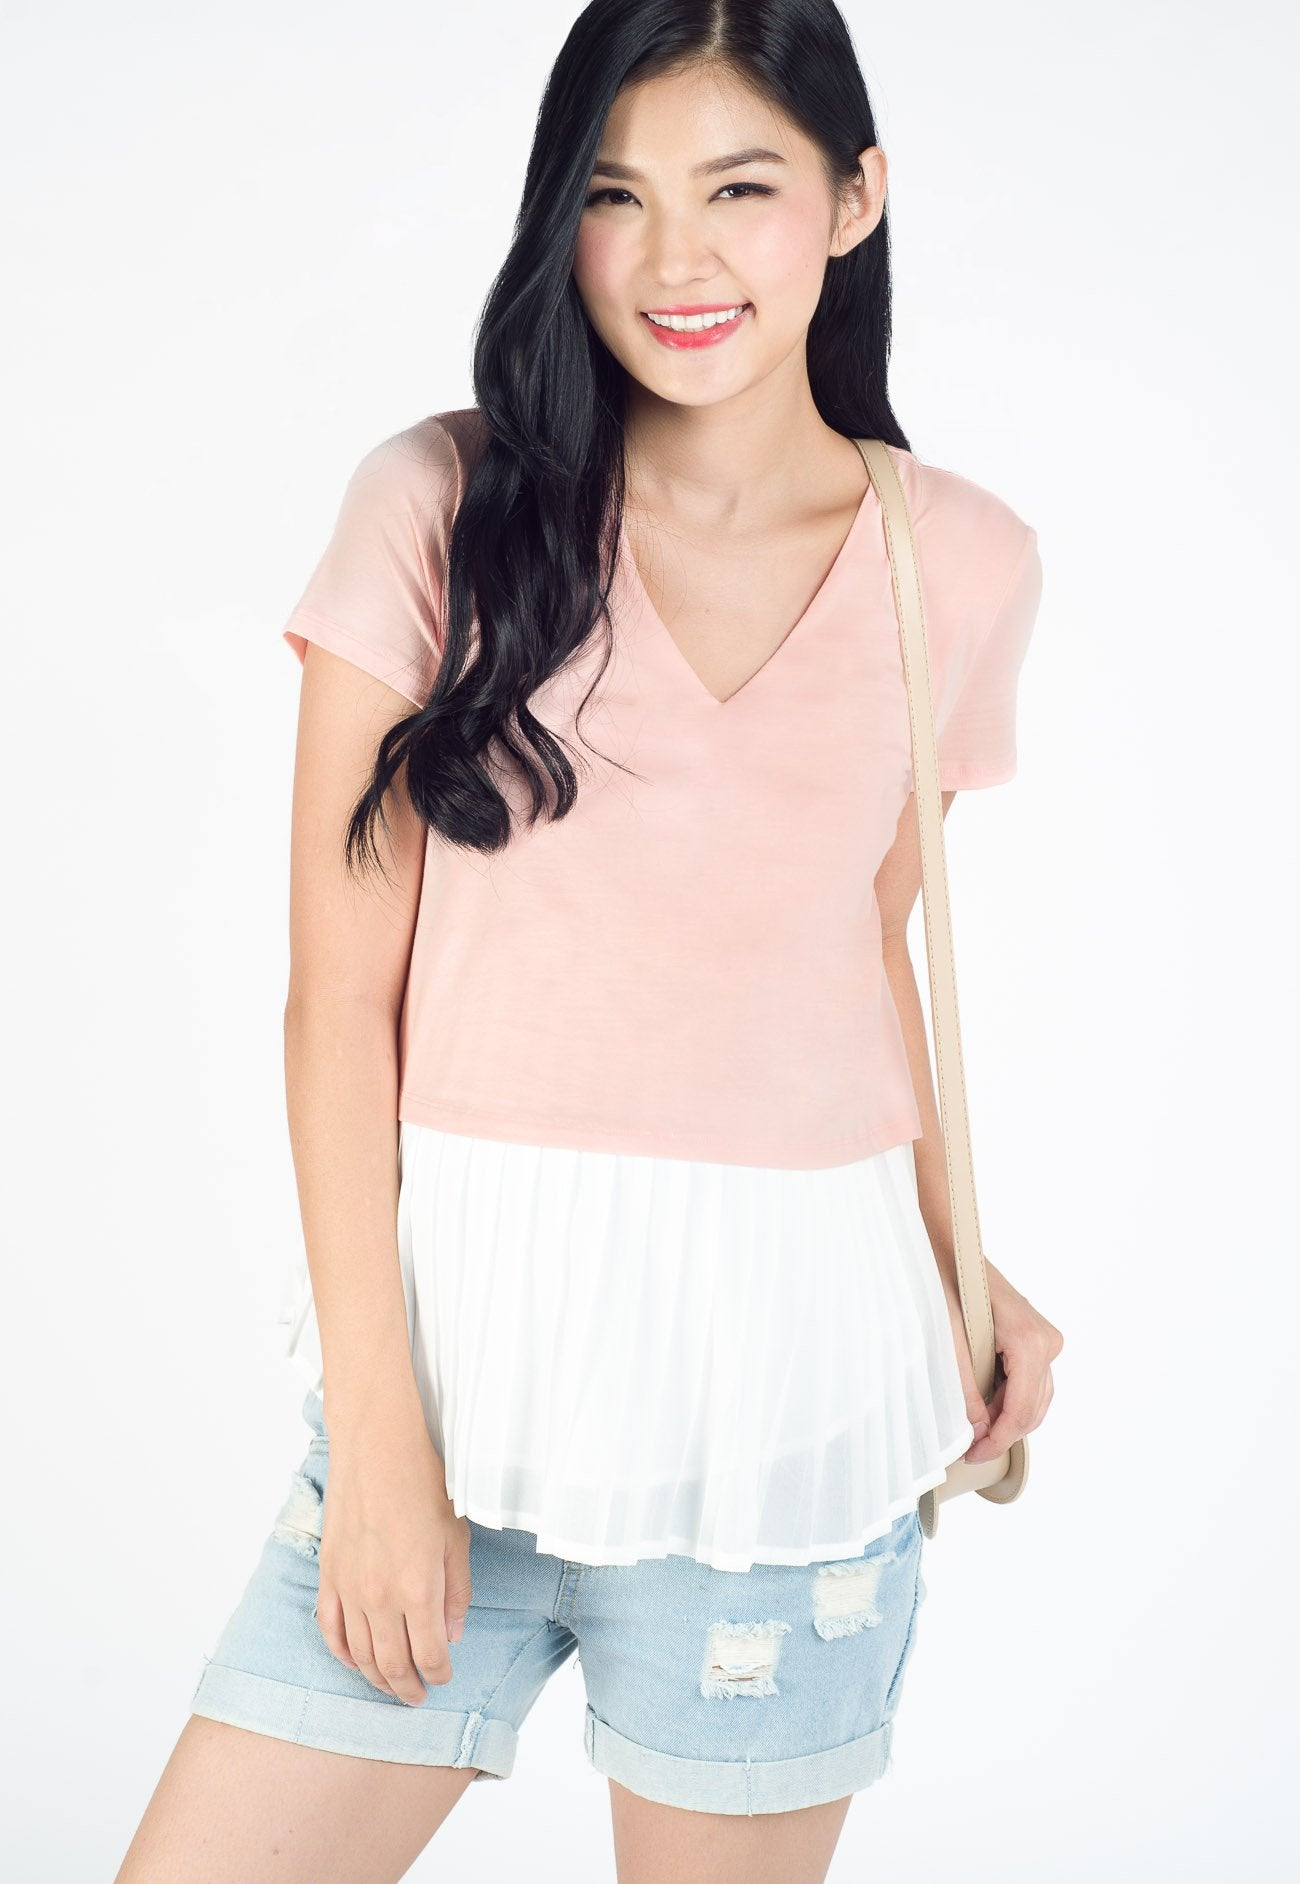 Sarah Pleated Nursing Top in Pink  by Jump Eat Cry - Maternity and nursing wear